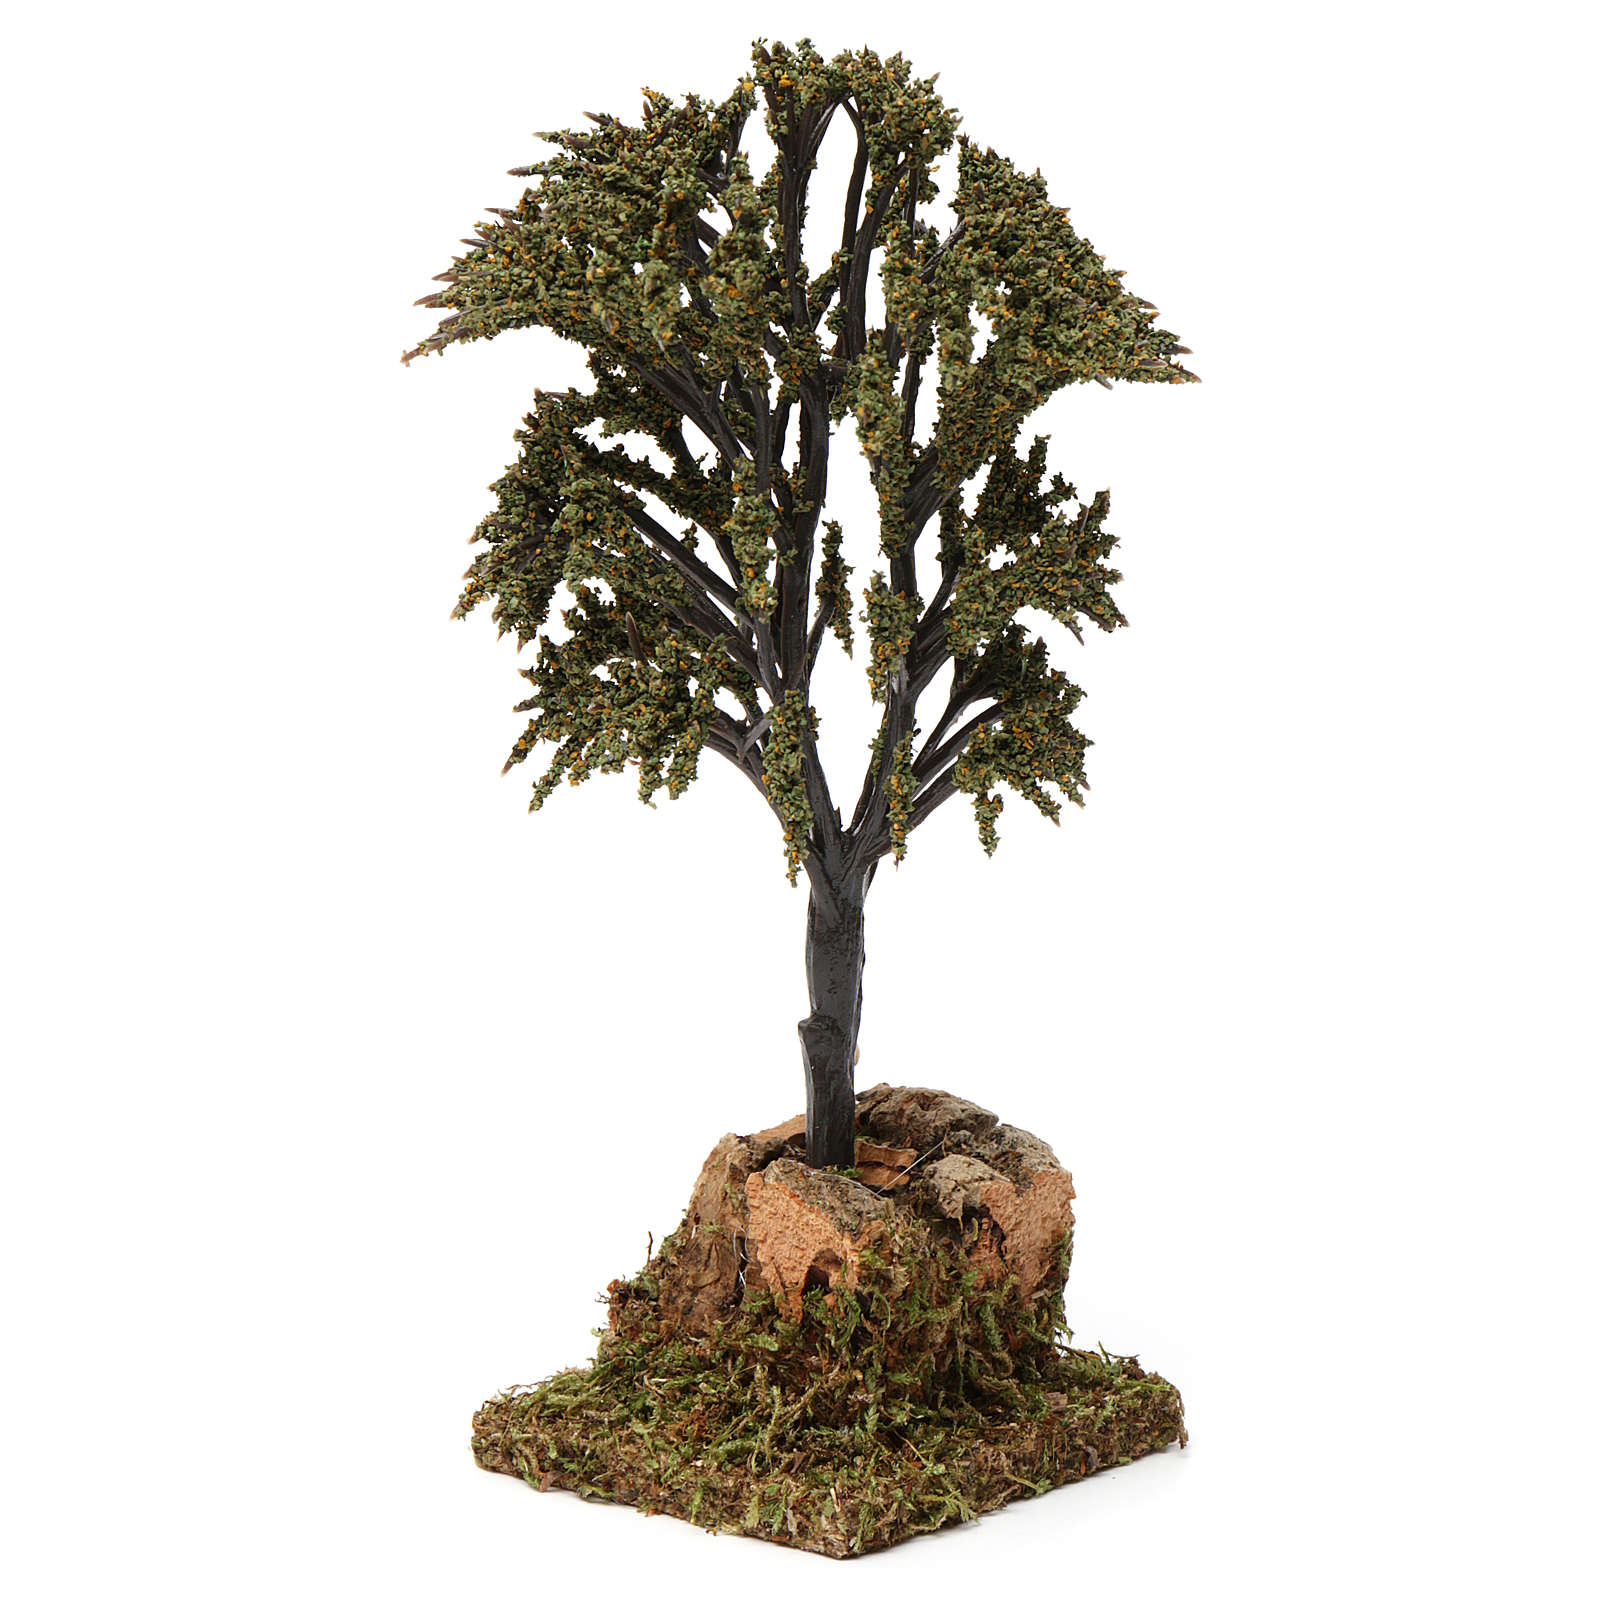 Green branched tree for Nativity Scene 7-10 cm 4